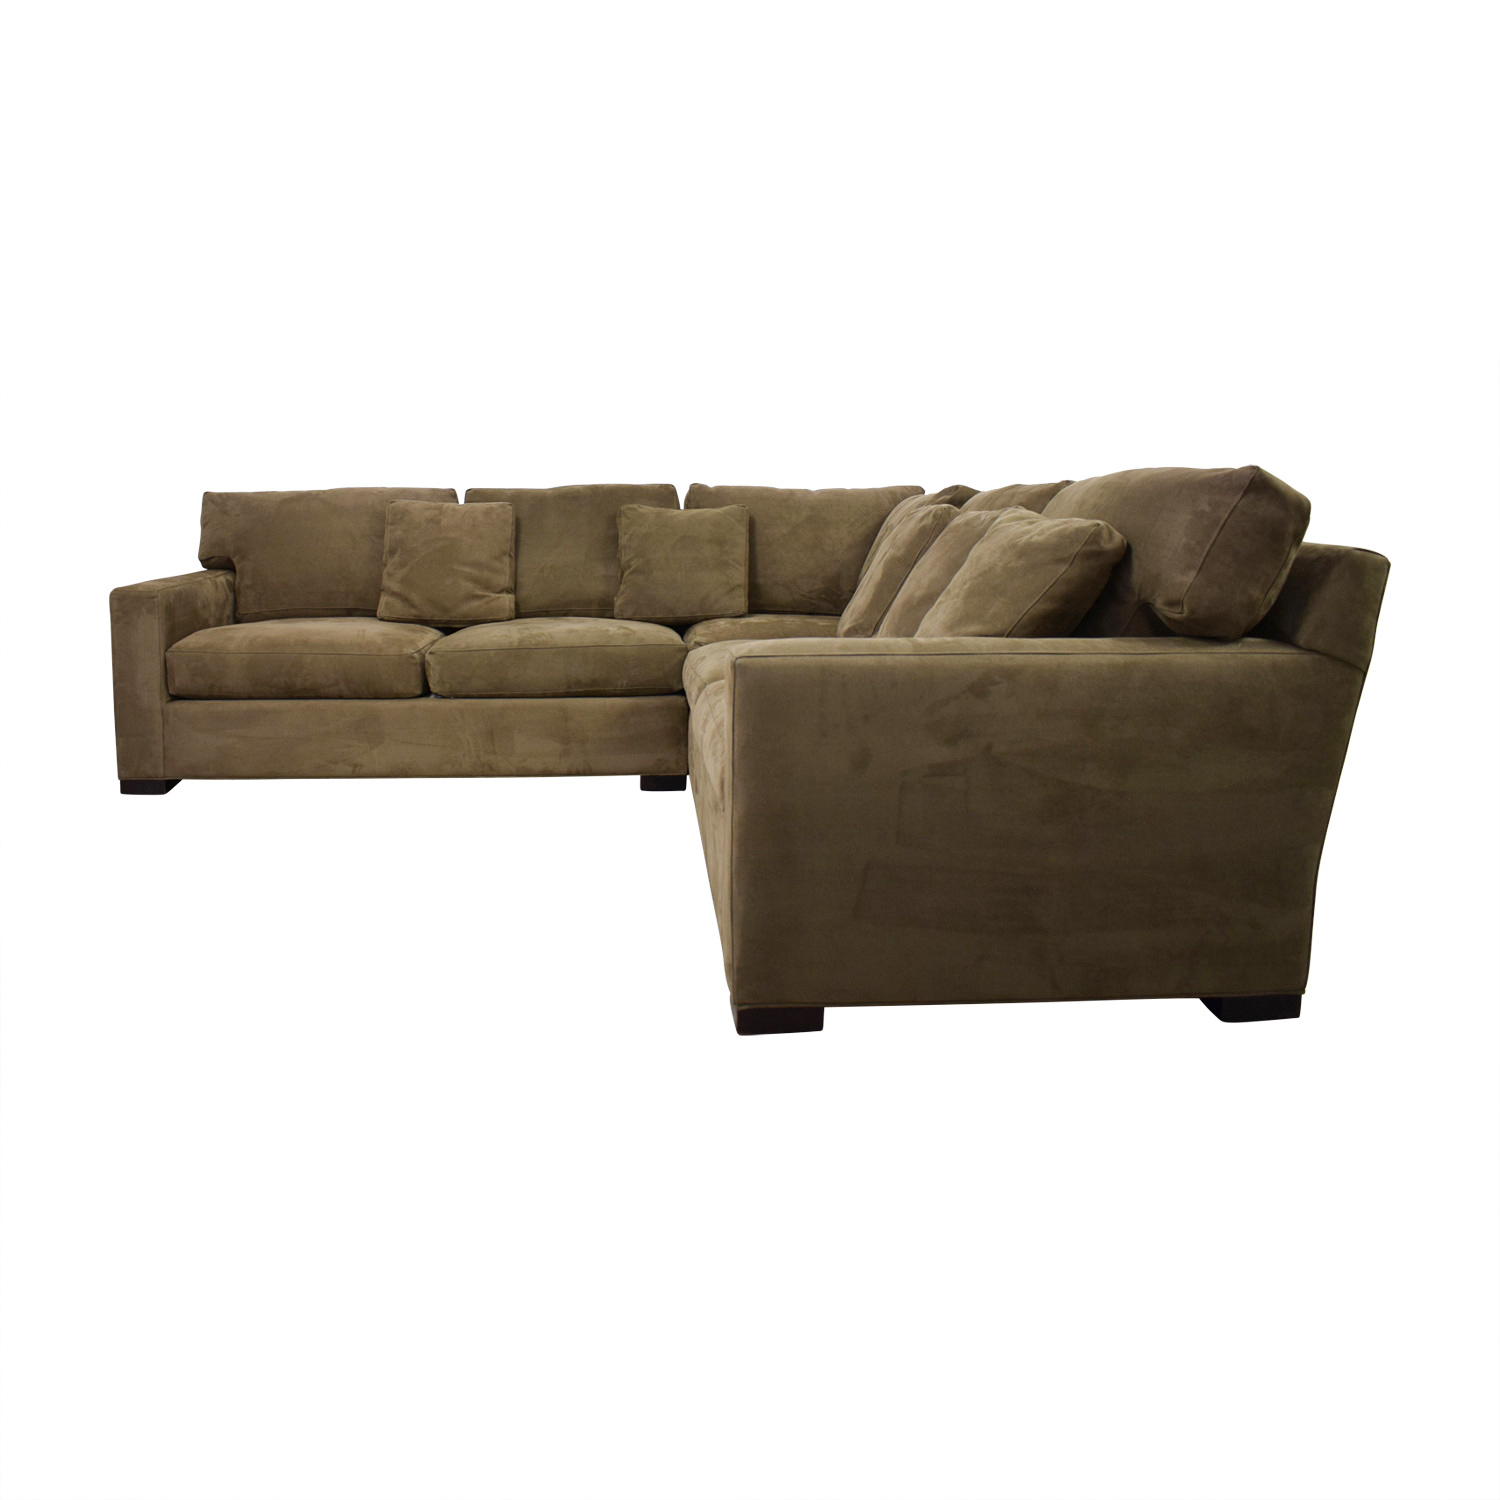 Crate & Barrel Axis II Brown L-Shaped Sectional / Sectionals